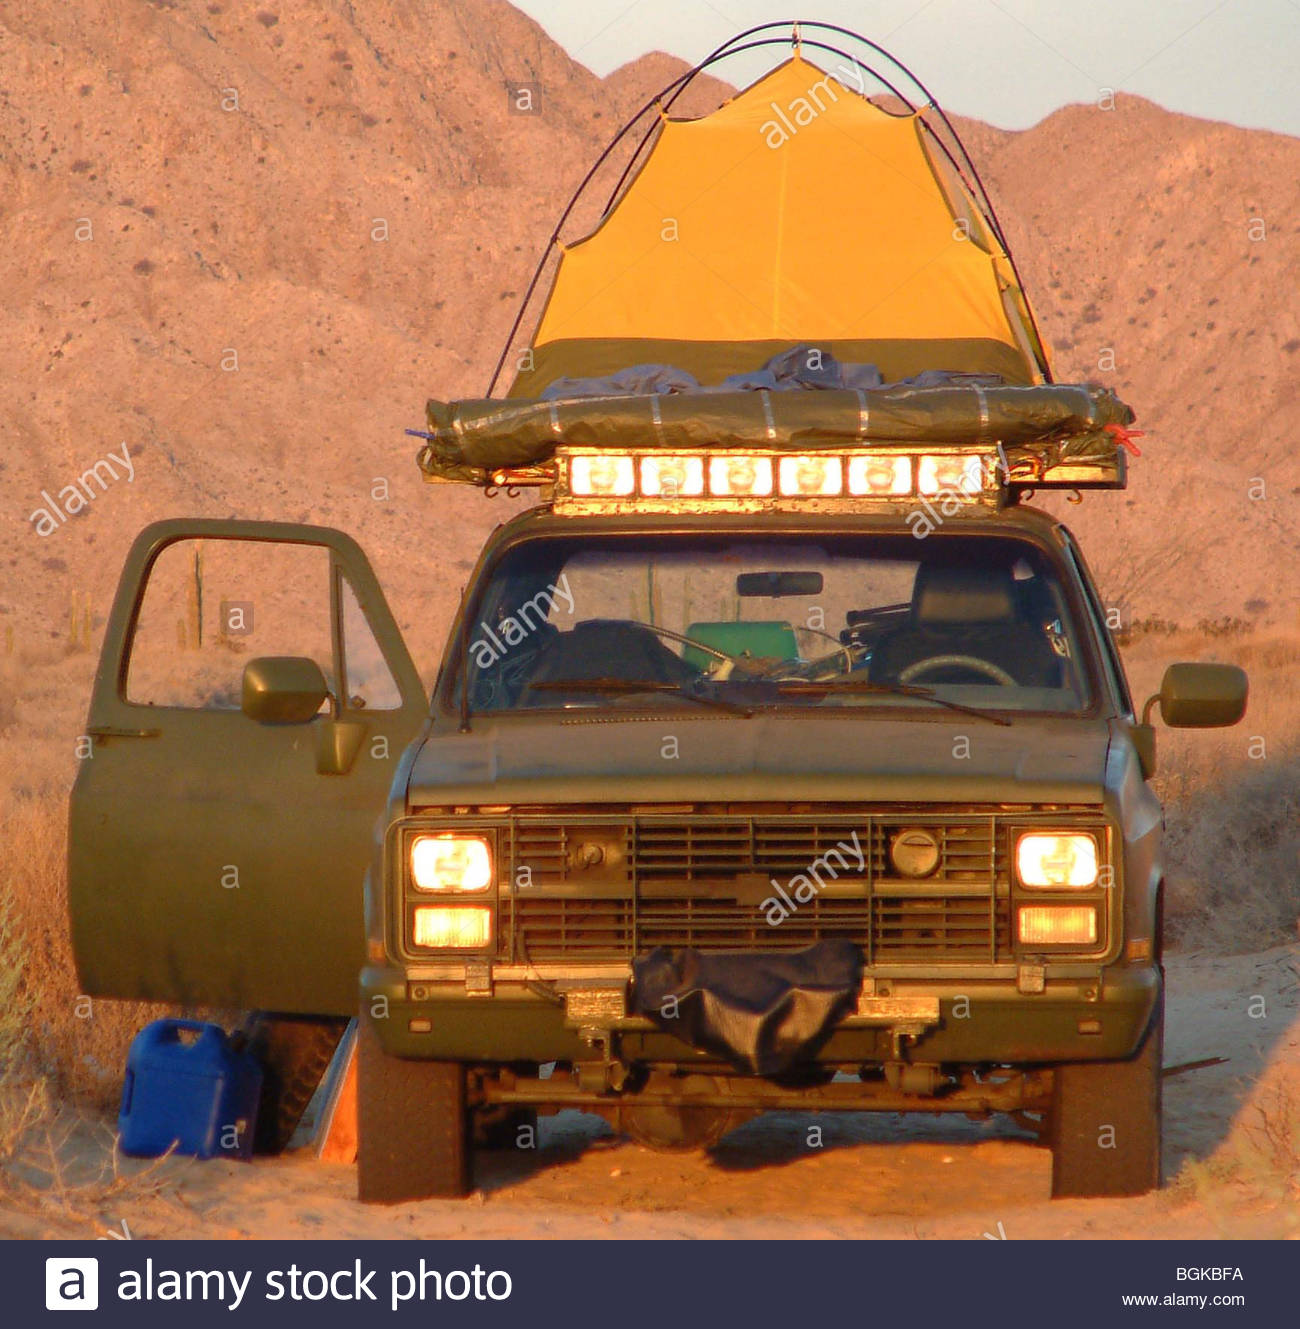 Chevy CUCV military Utility truck Chevrolet 4x4 OD green